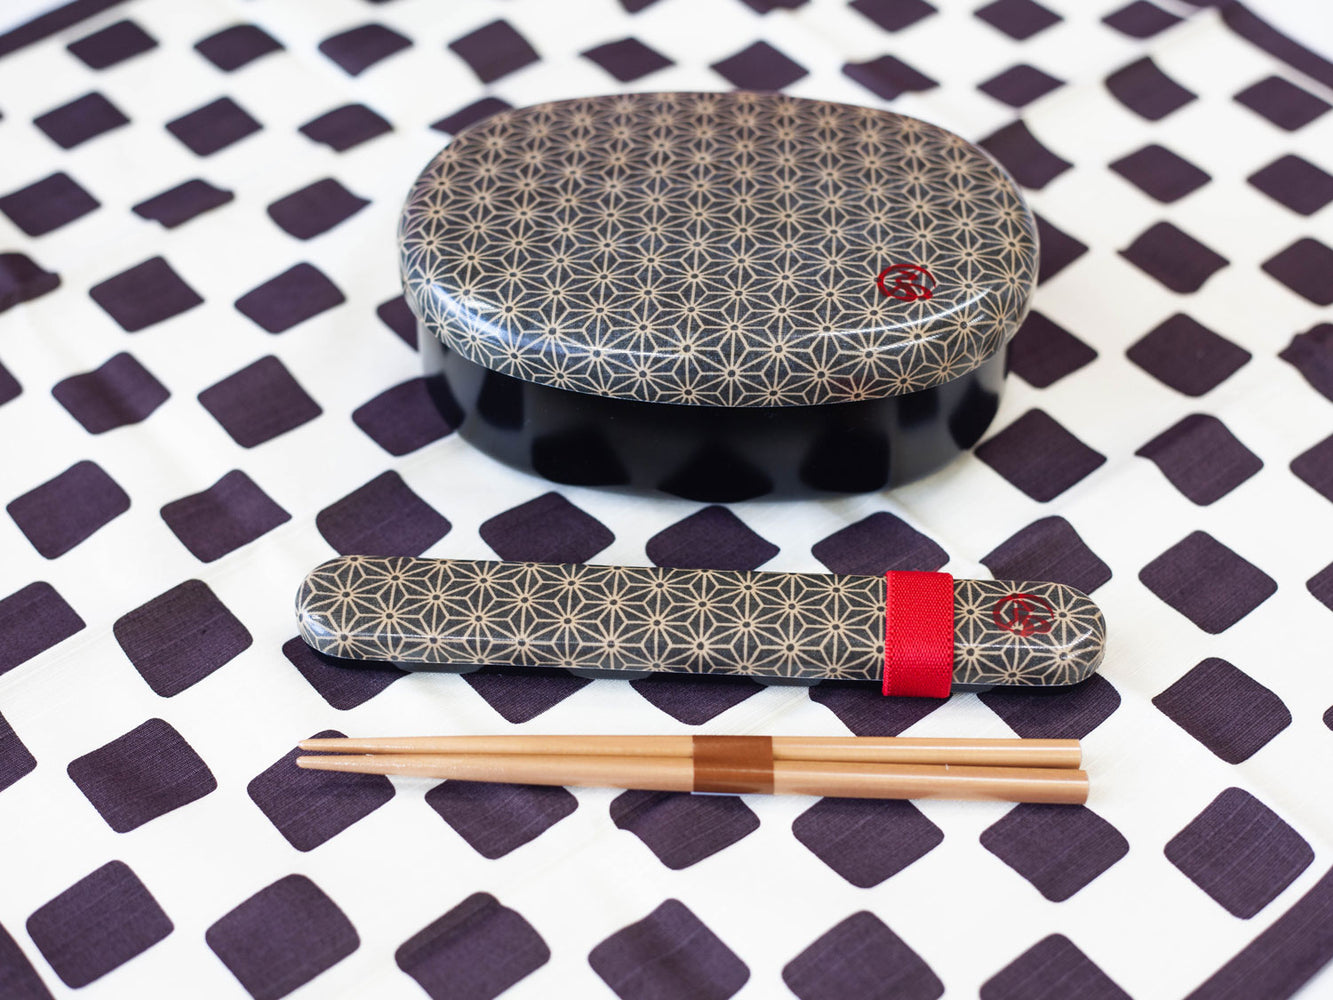 Wafu Cloth Round Bento Box | Asanoha Leaf by Hakoya - Bento&co Japanese Bento Lunch Boxes and Kitchenware Specialists